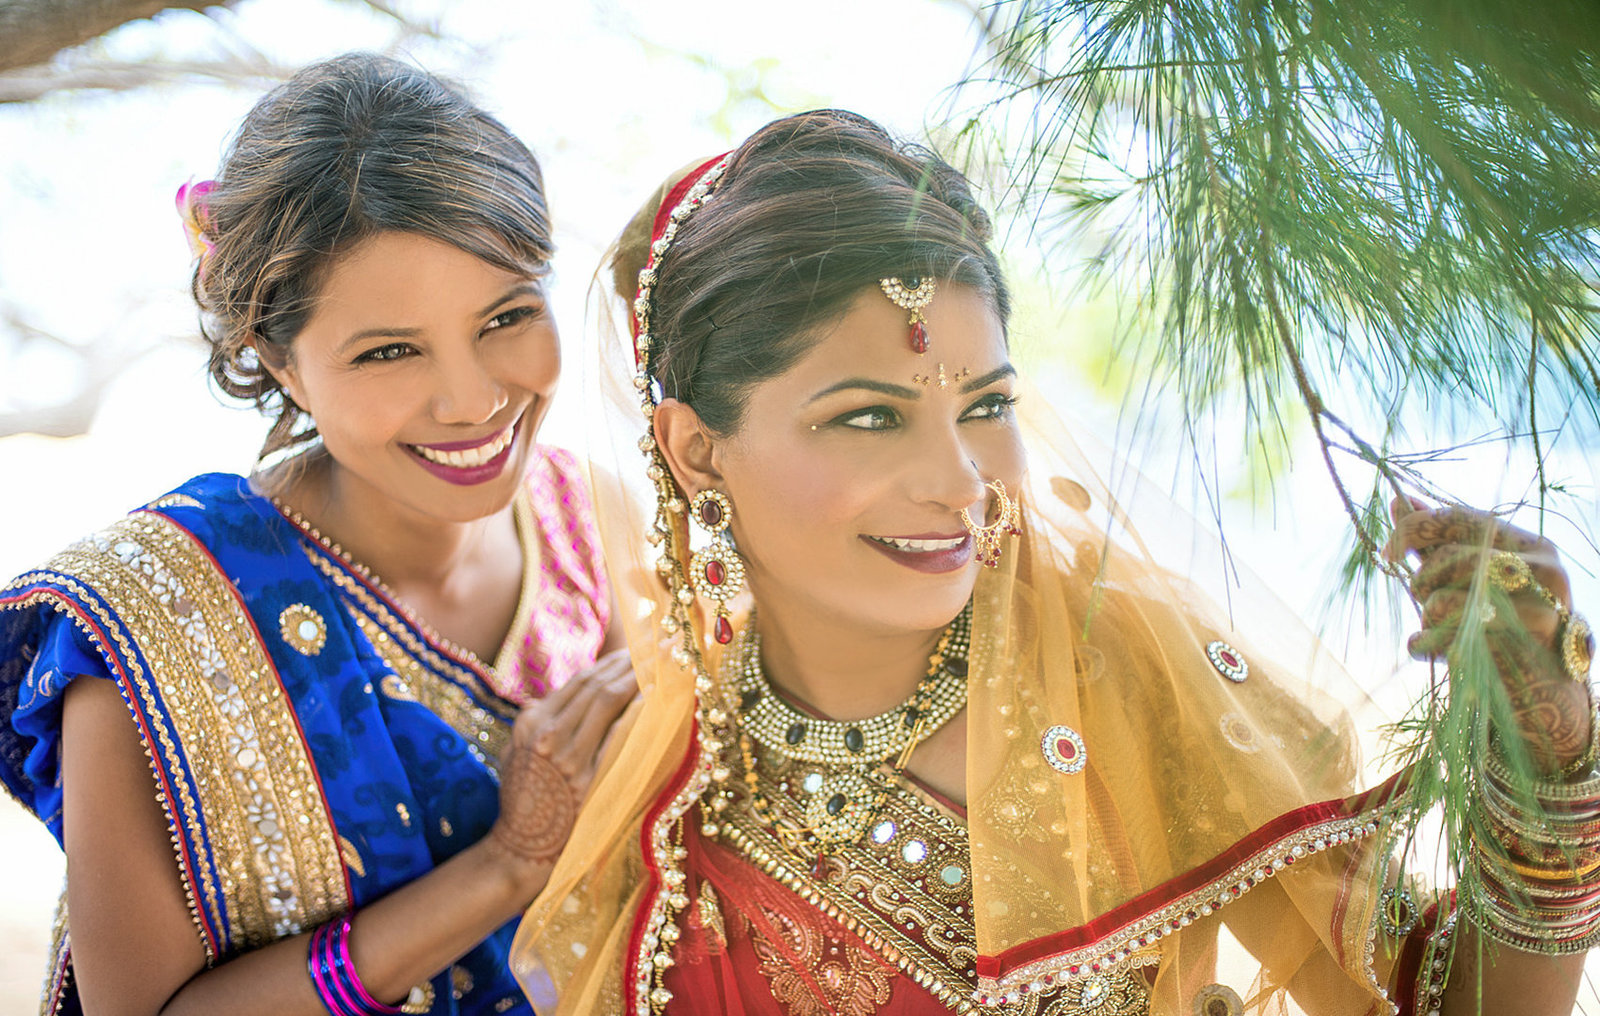 Indian weddings on Maui